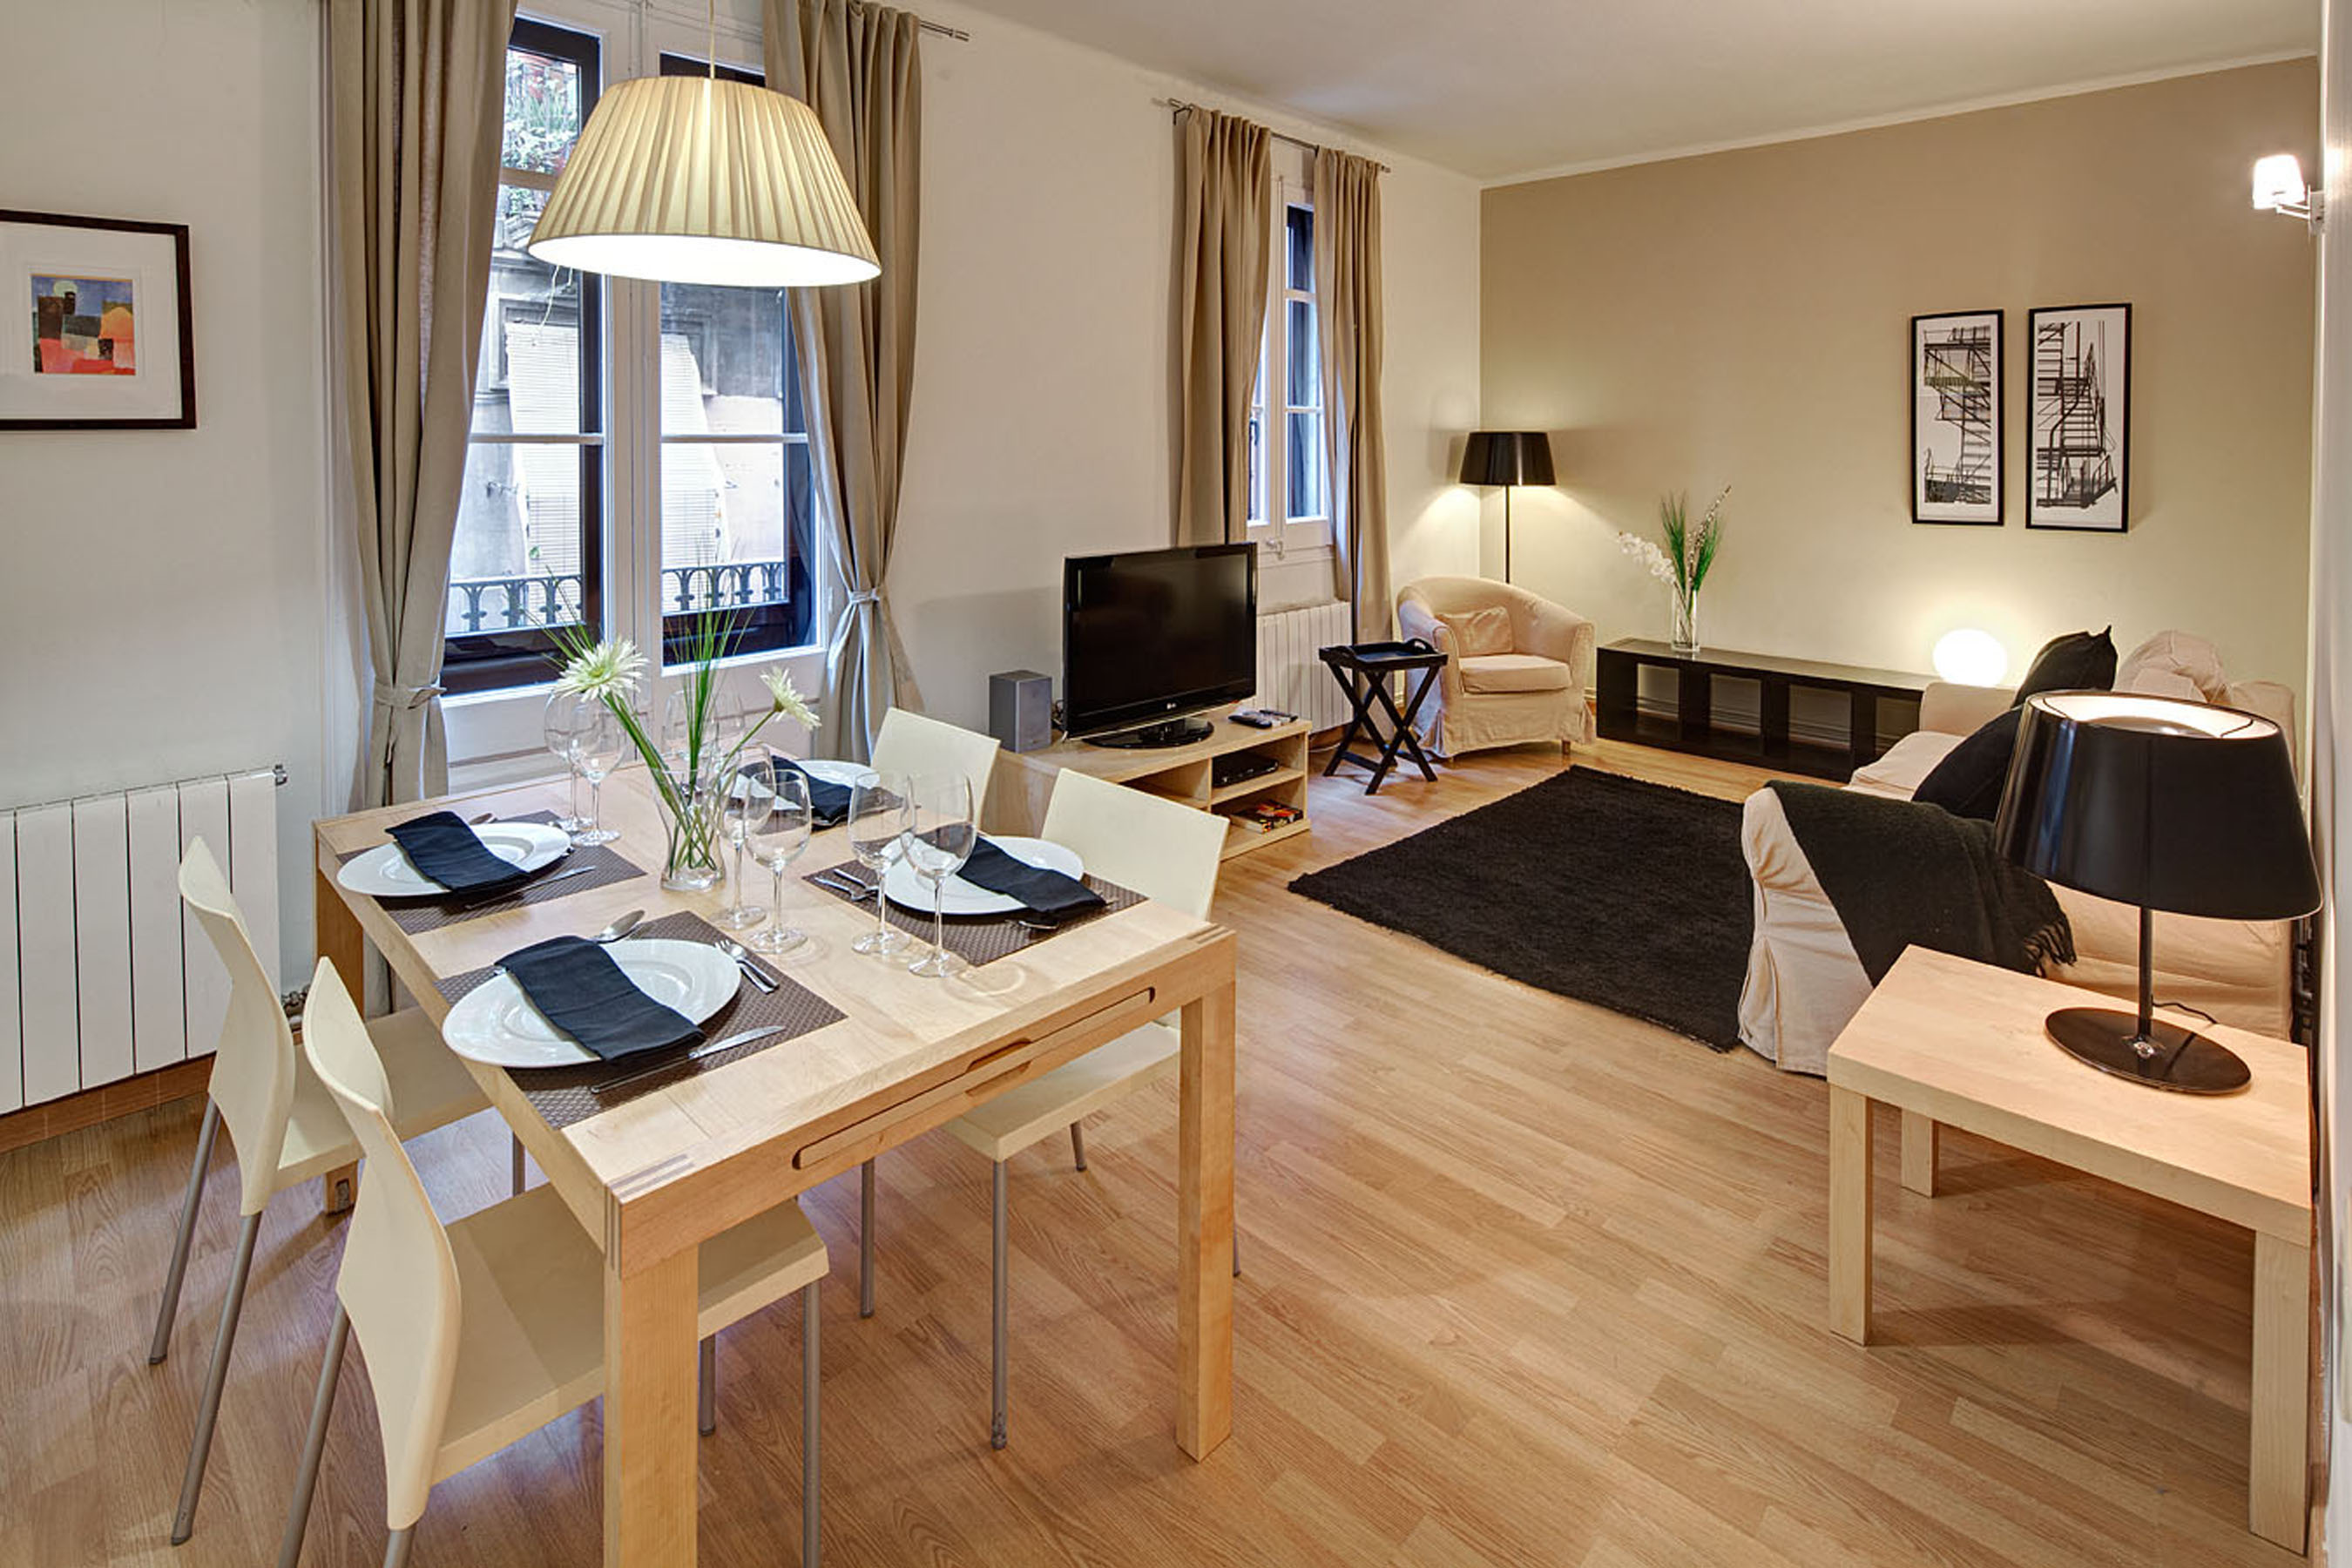 Art 3 apartment barcelona living Amazing Apartments next to Las Ramblas   the Heart of Barcelona